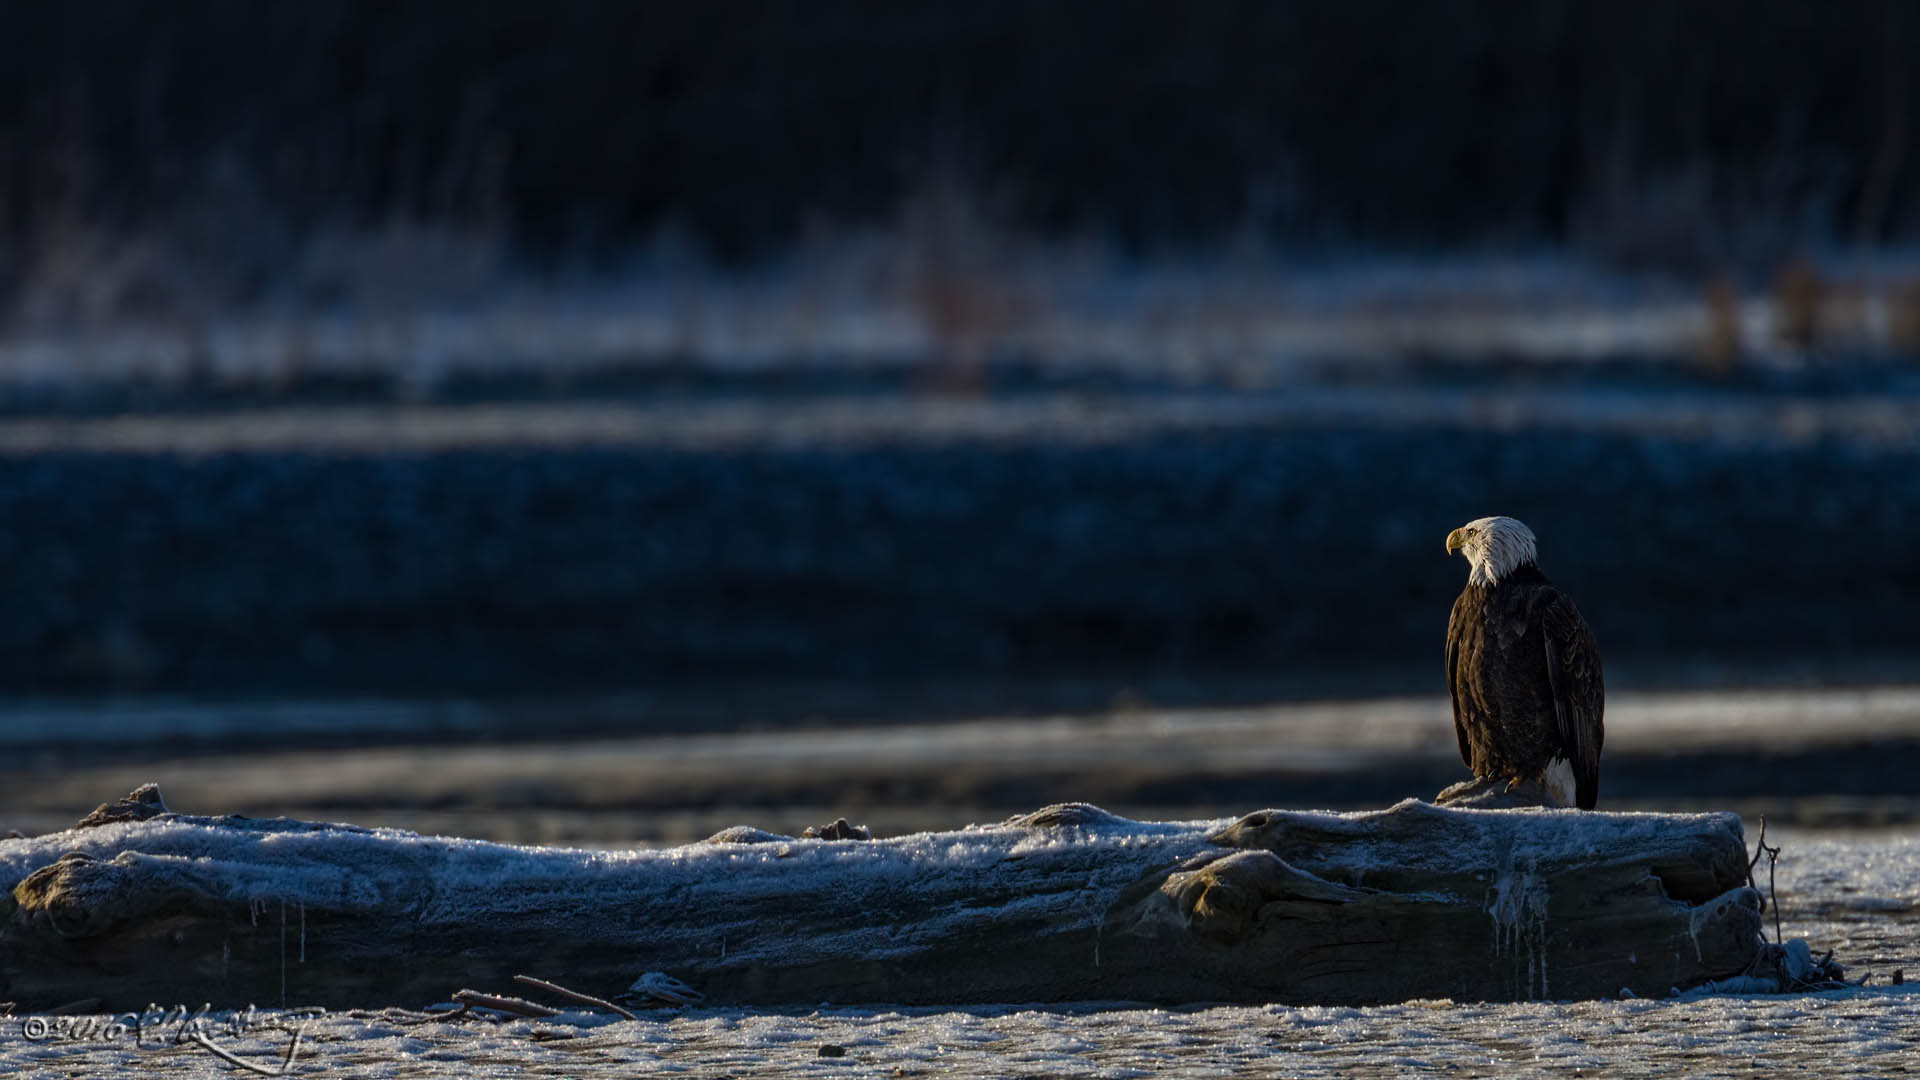 Bald Eagle - frigid perch